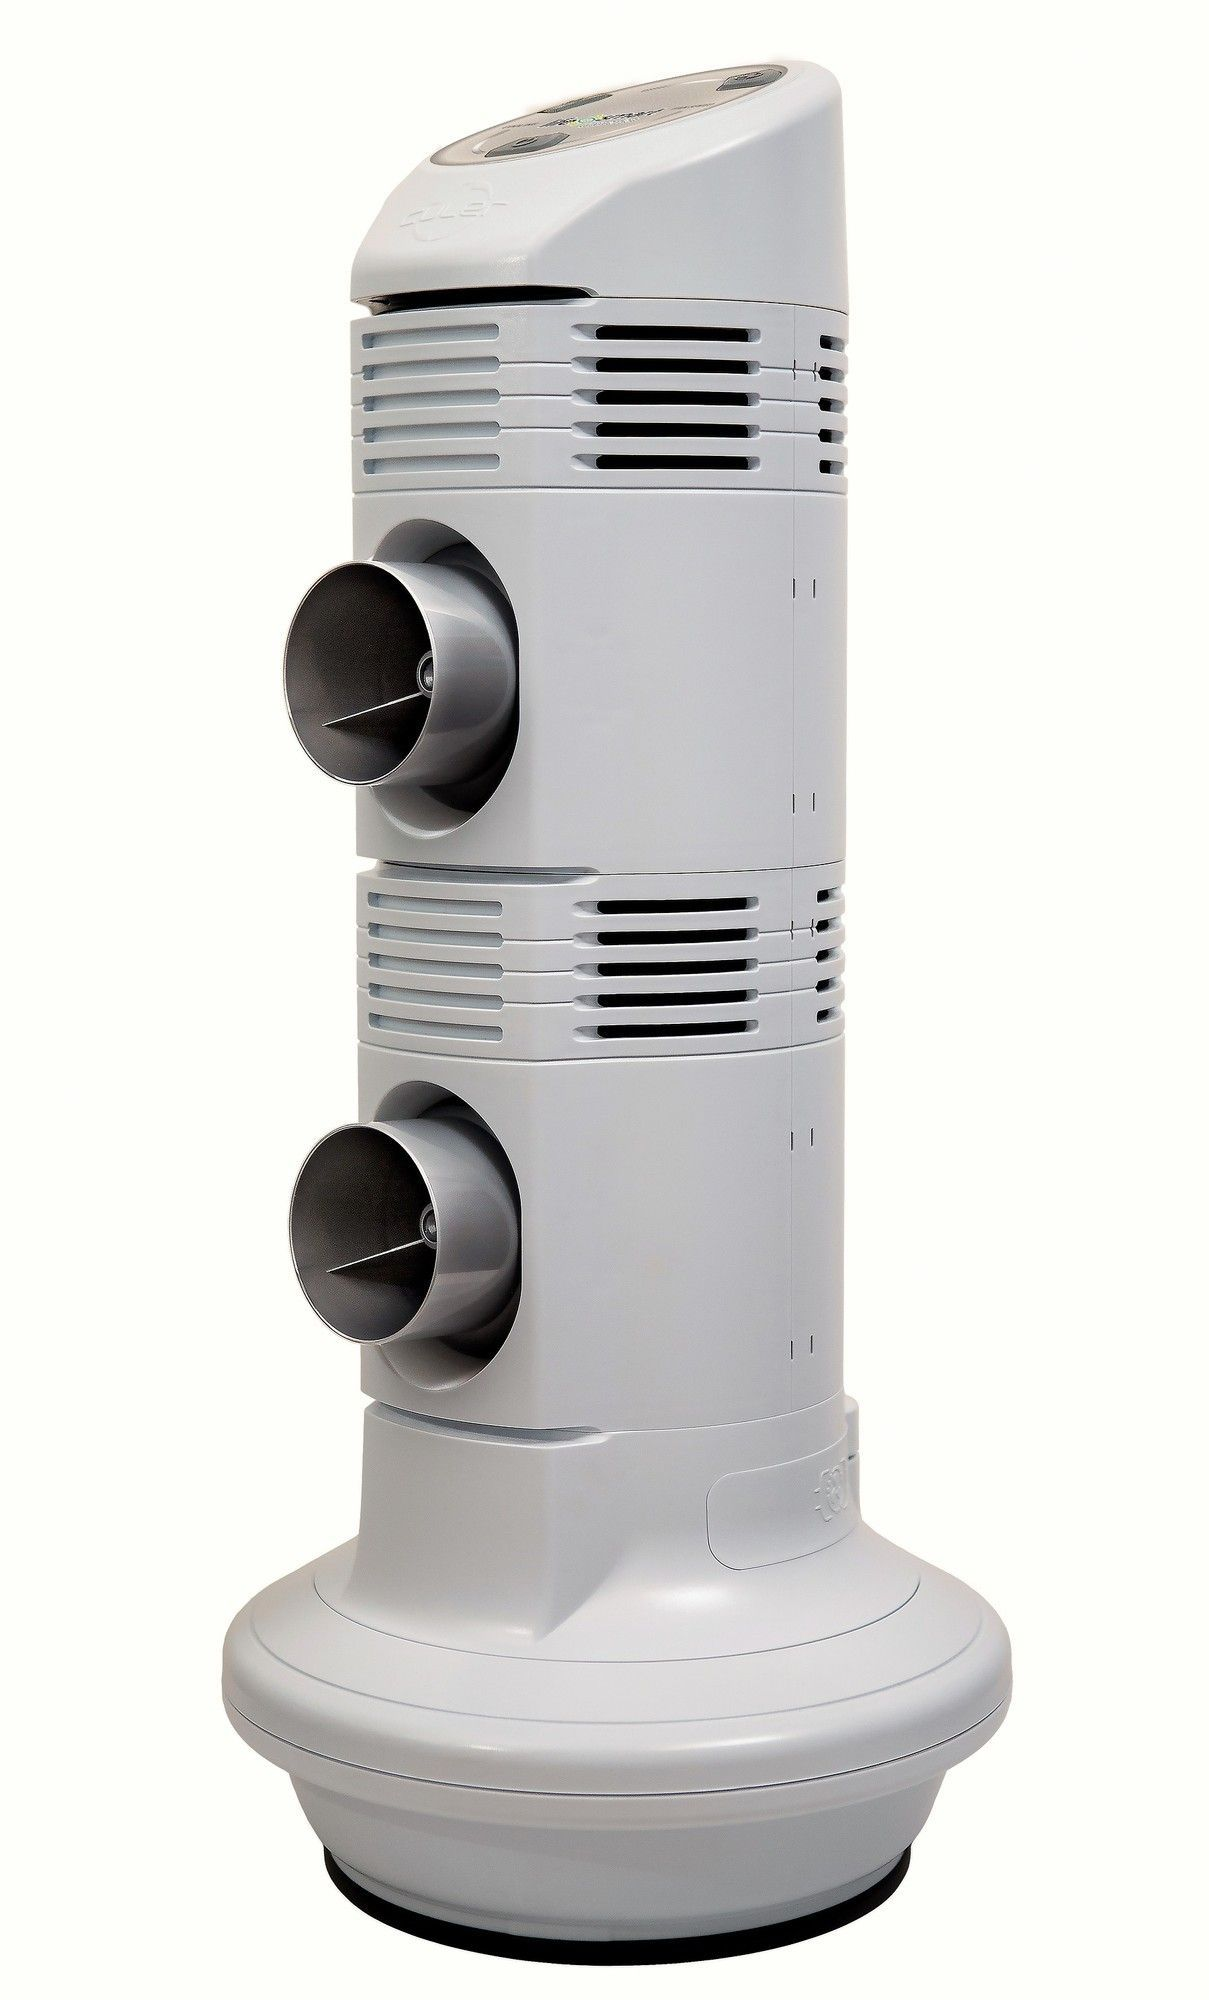 Features Compatible with AC or DC power sources (DC